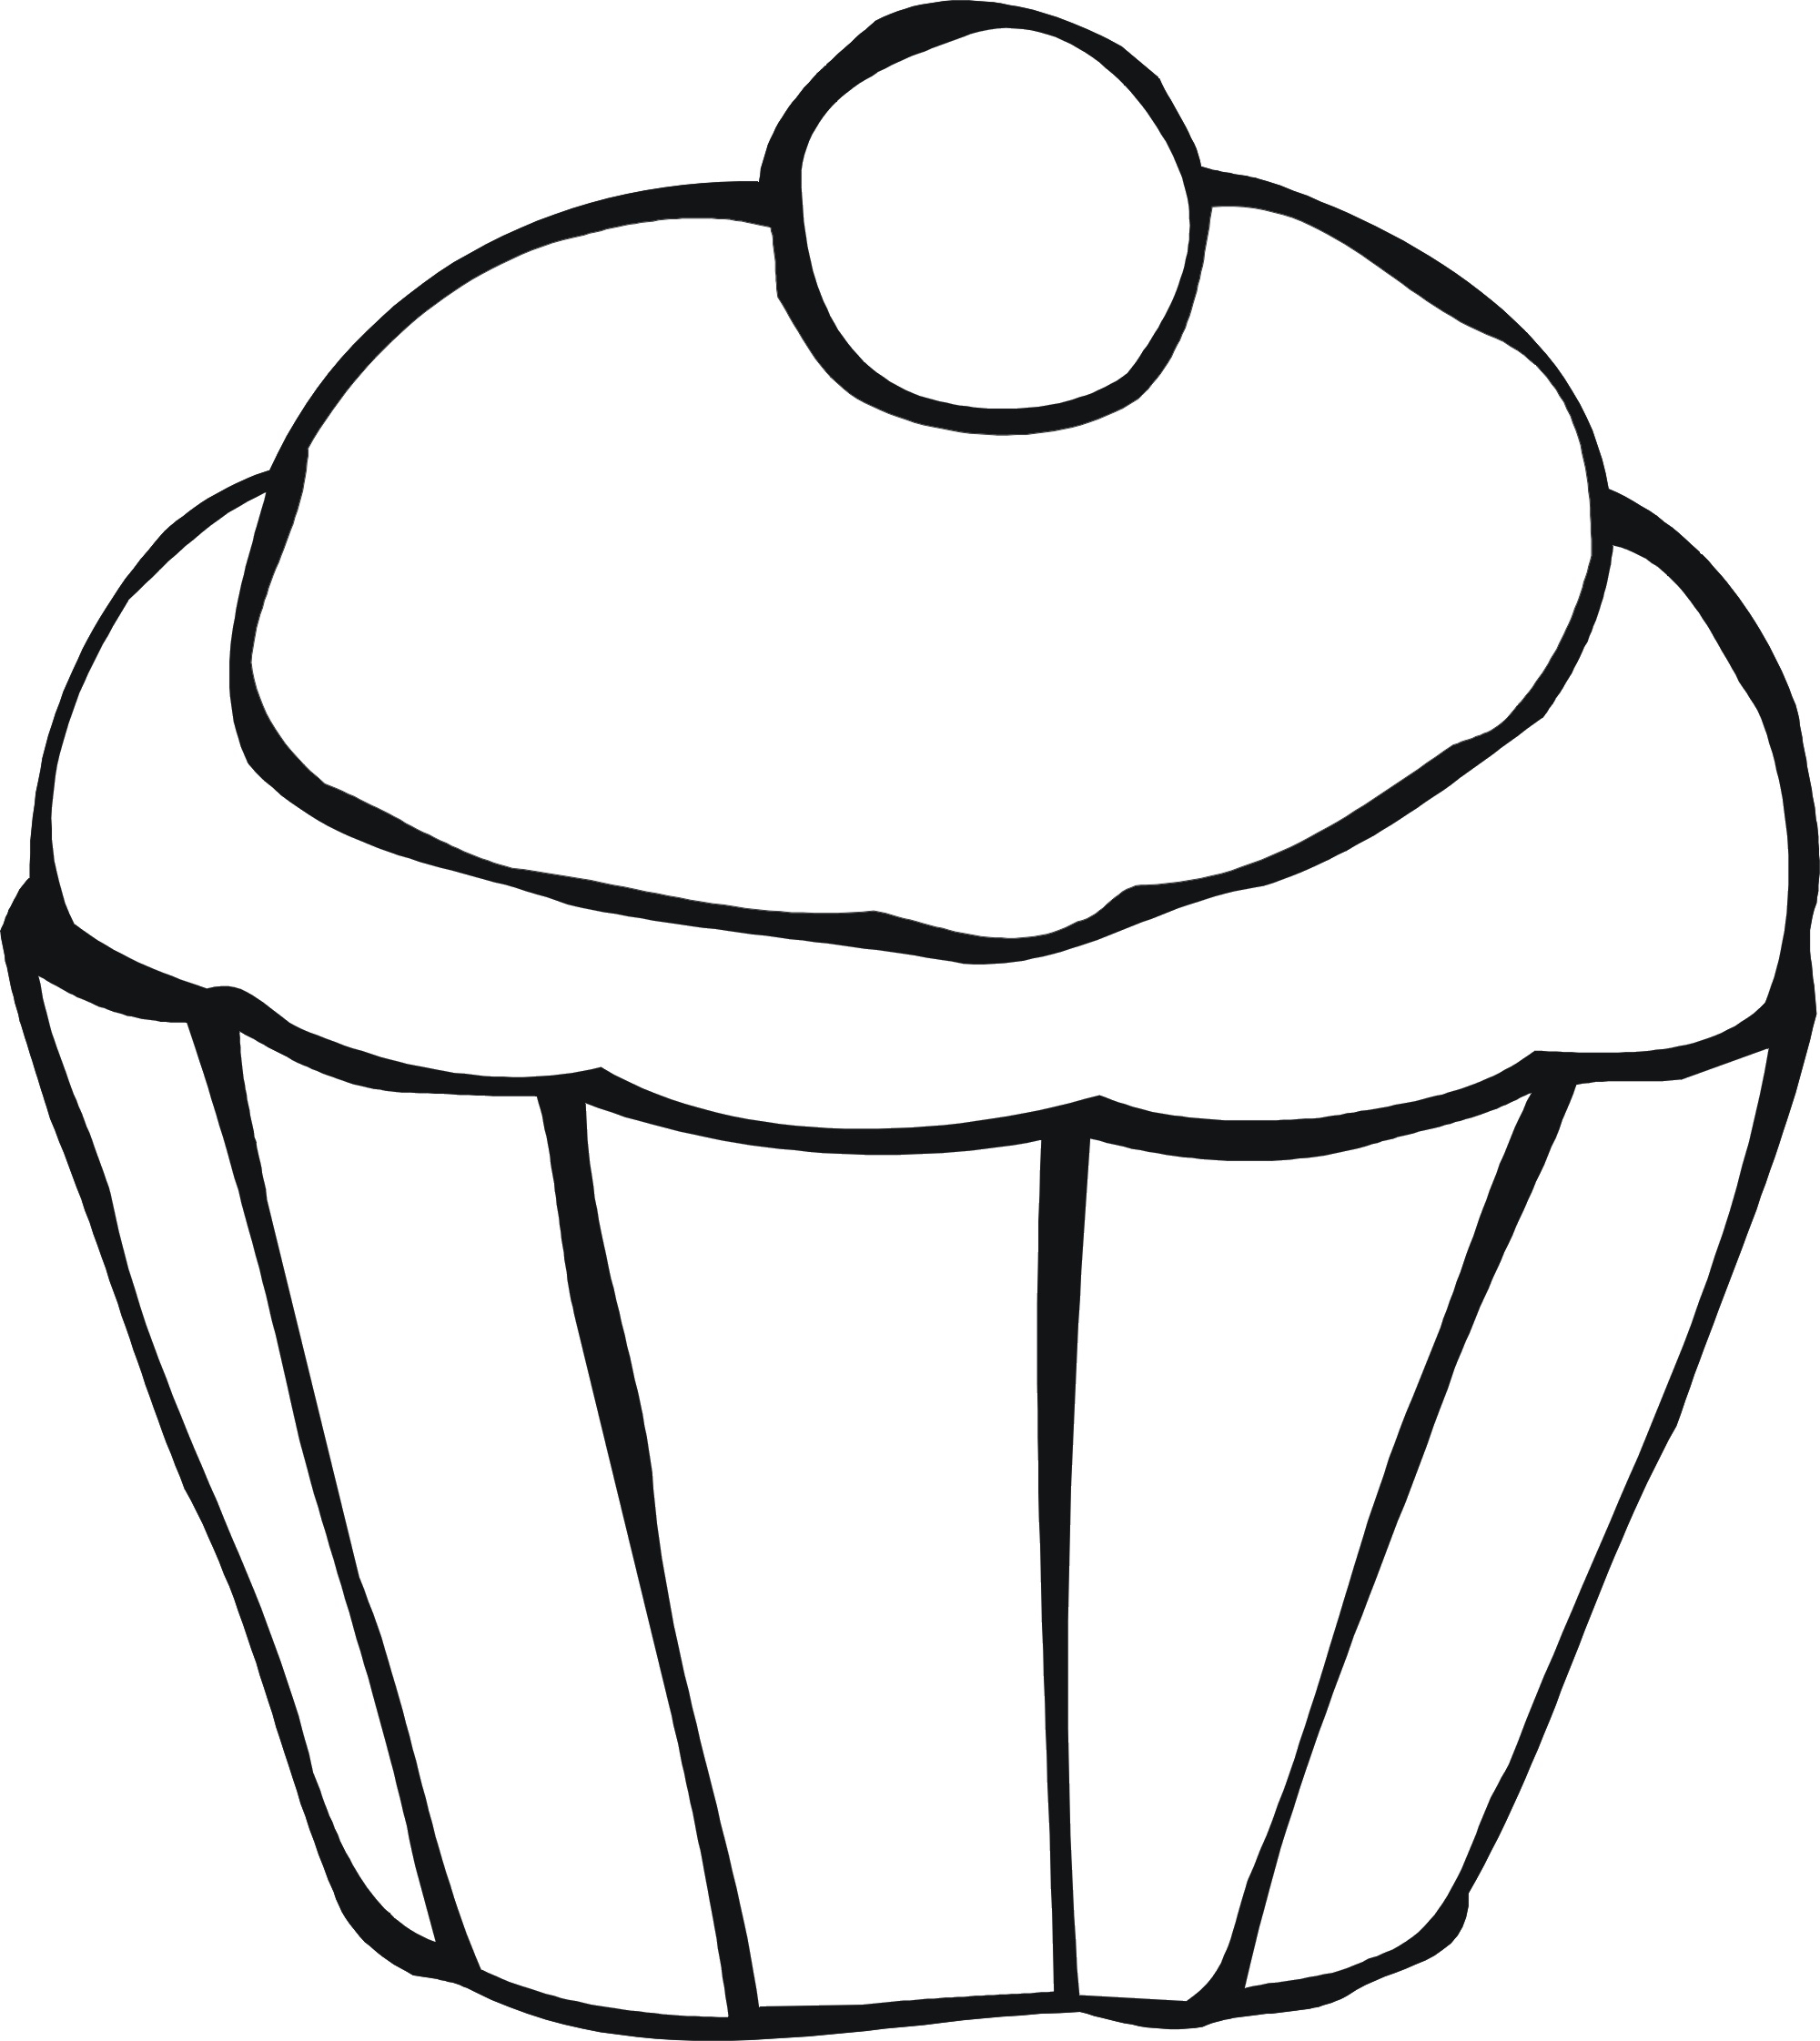 Coloring Pages For Kids To Print Out Coloring Pages Coloring Arts Printable For Preschoolers Free